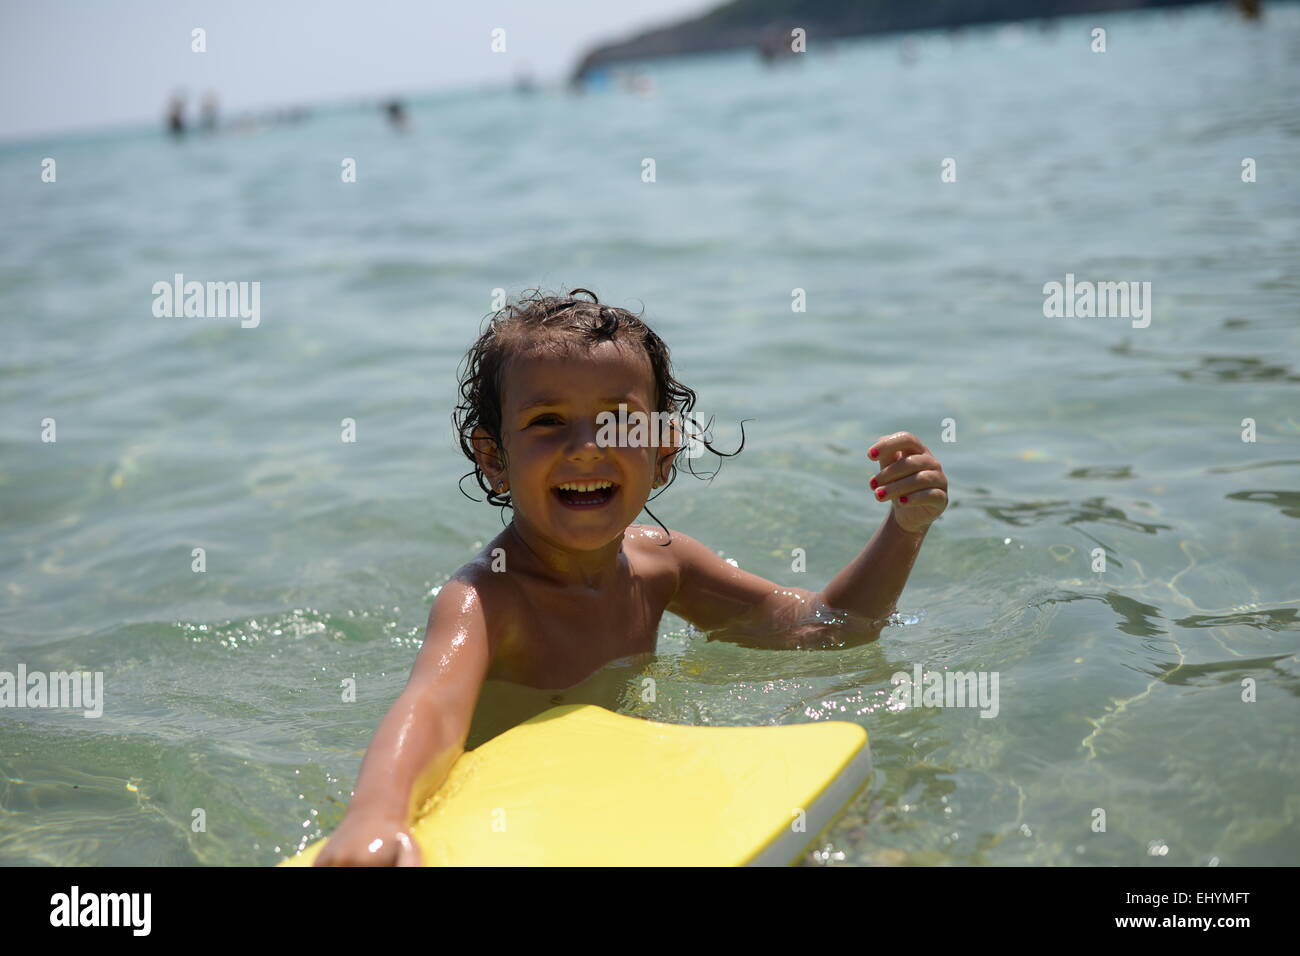 Smiling girl playing with a float in the sea, Thassos, Greece - Stock Image